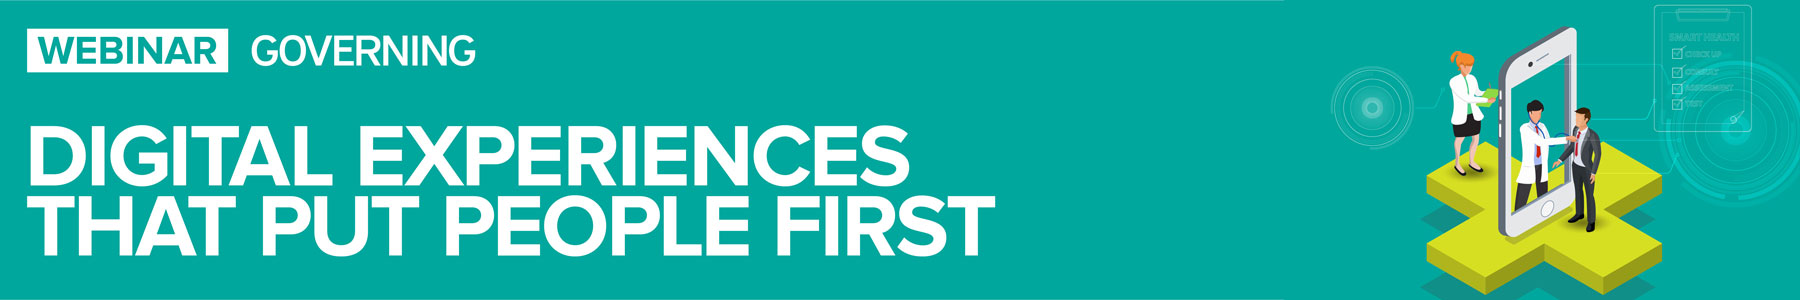 Digital Experiences That Put People First